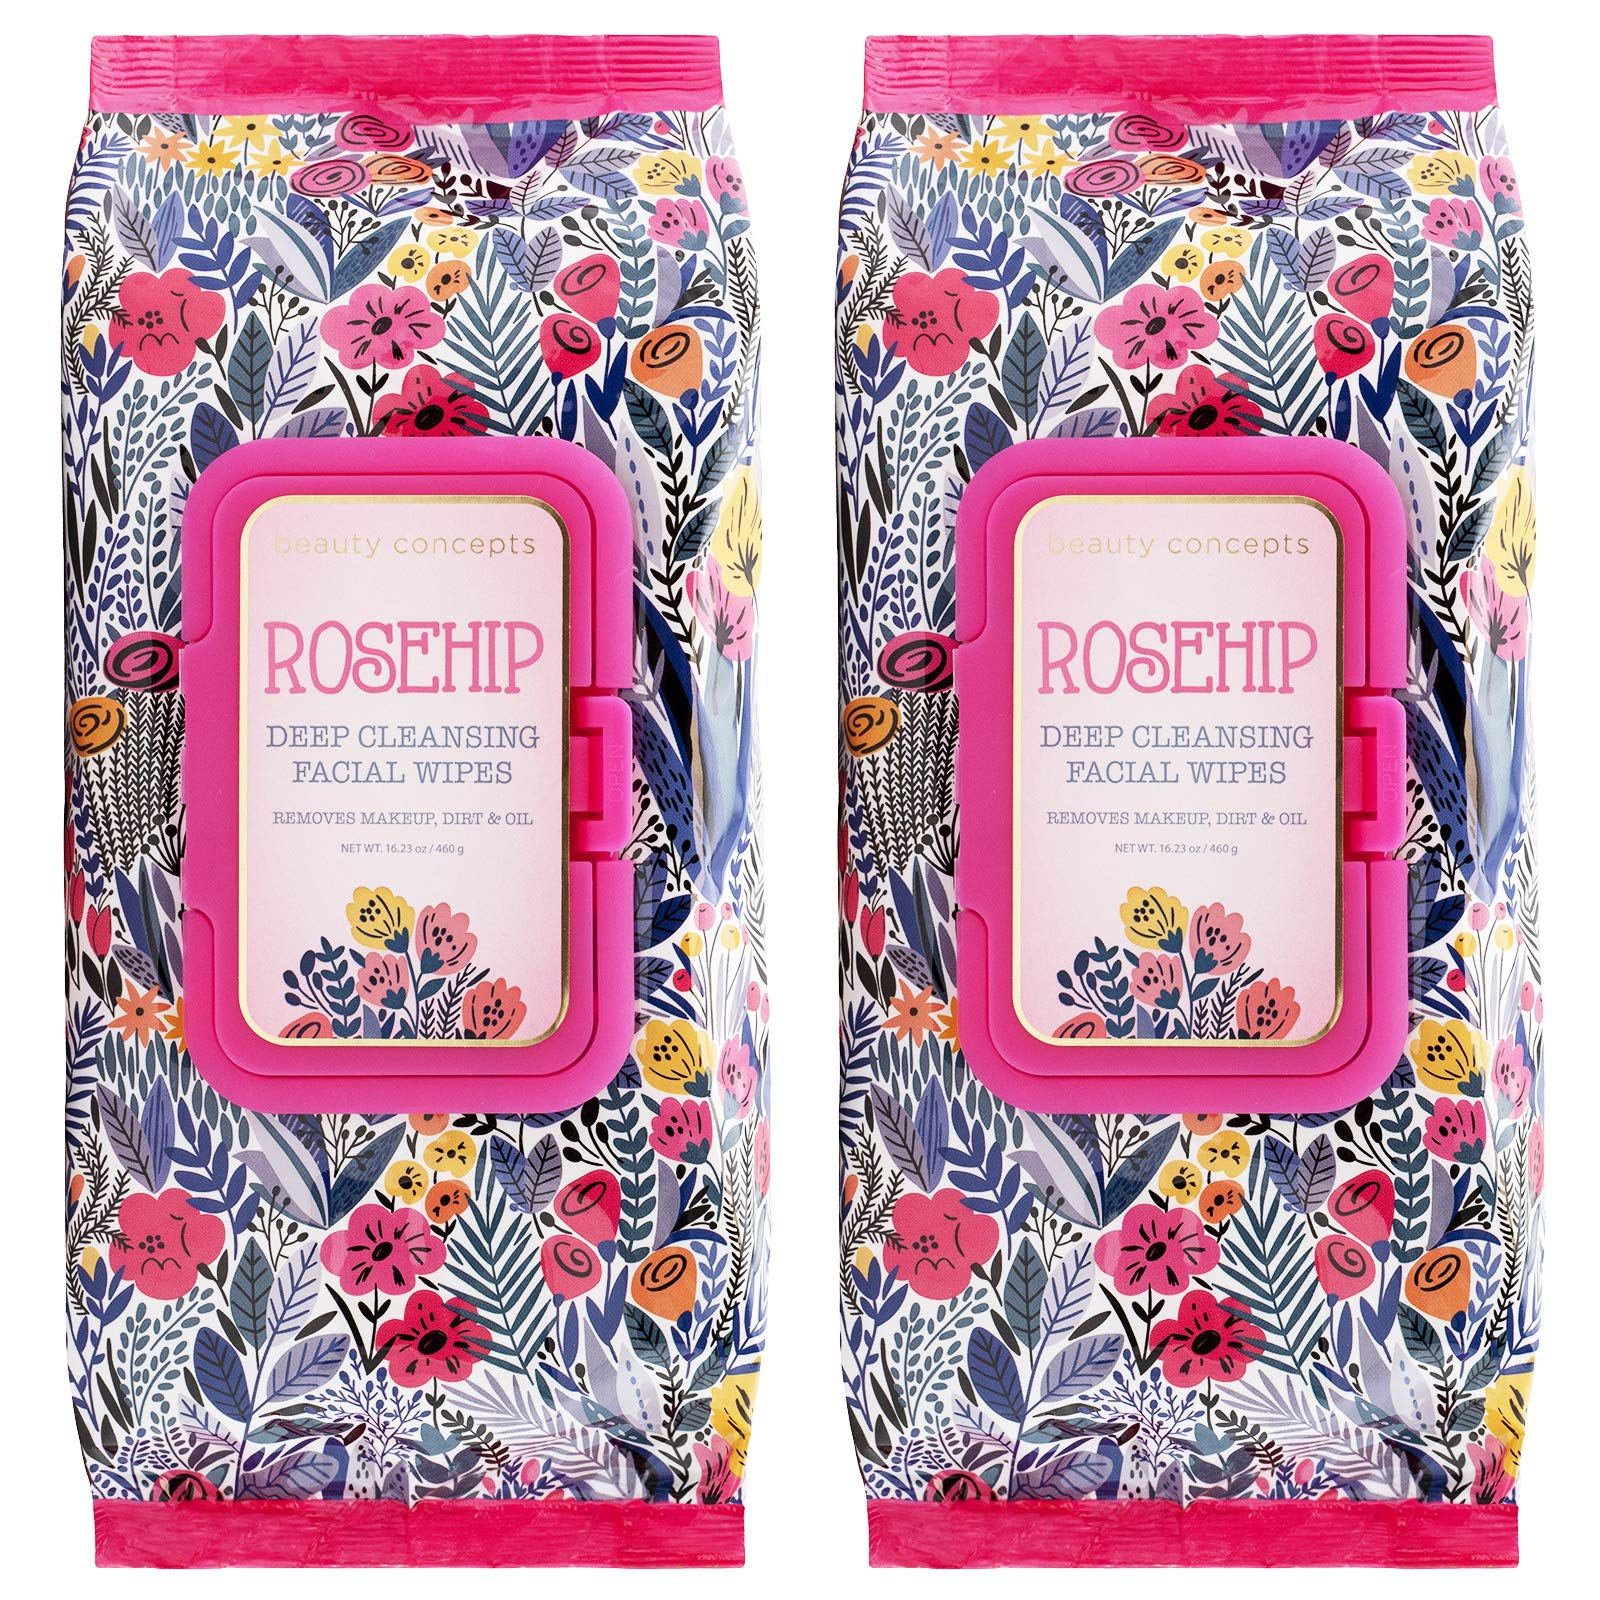 Beauty Concepts Face Wipes & Makeup Remover Wipes - 2 Pack (60 Count Each) of Gentle Facial Towelettes – Flip Top Pack (Rosehip)